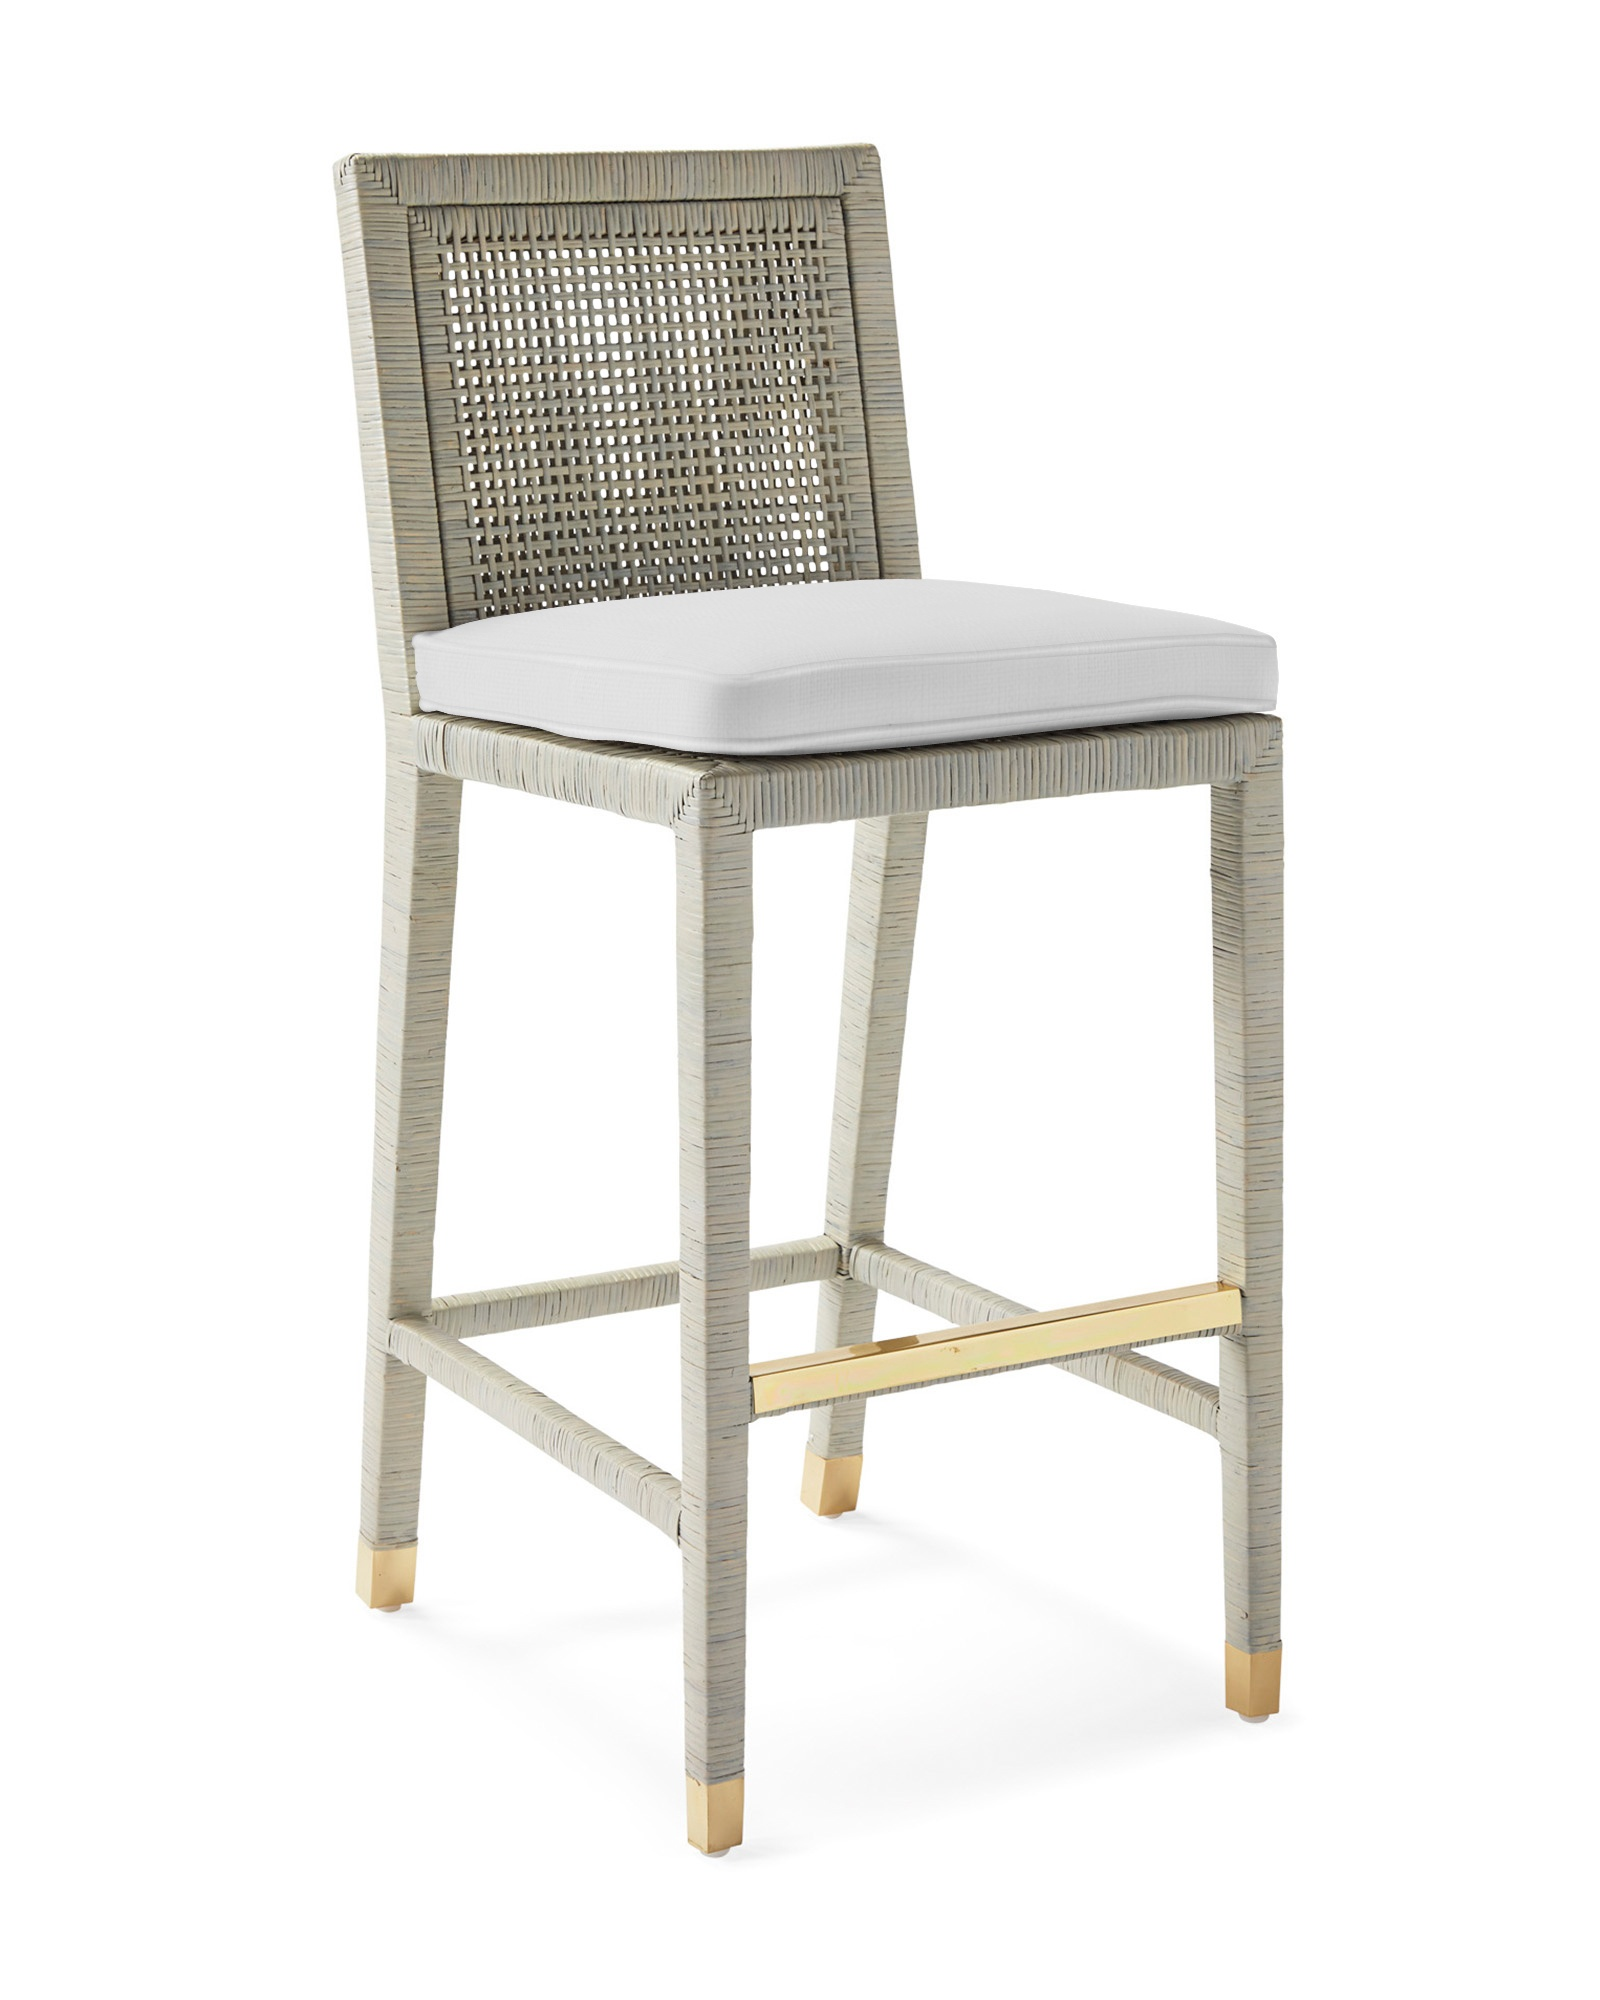 Cushion Cover for Balboa Barstool - Mist, Perennials Basketweave White